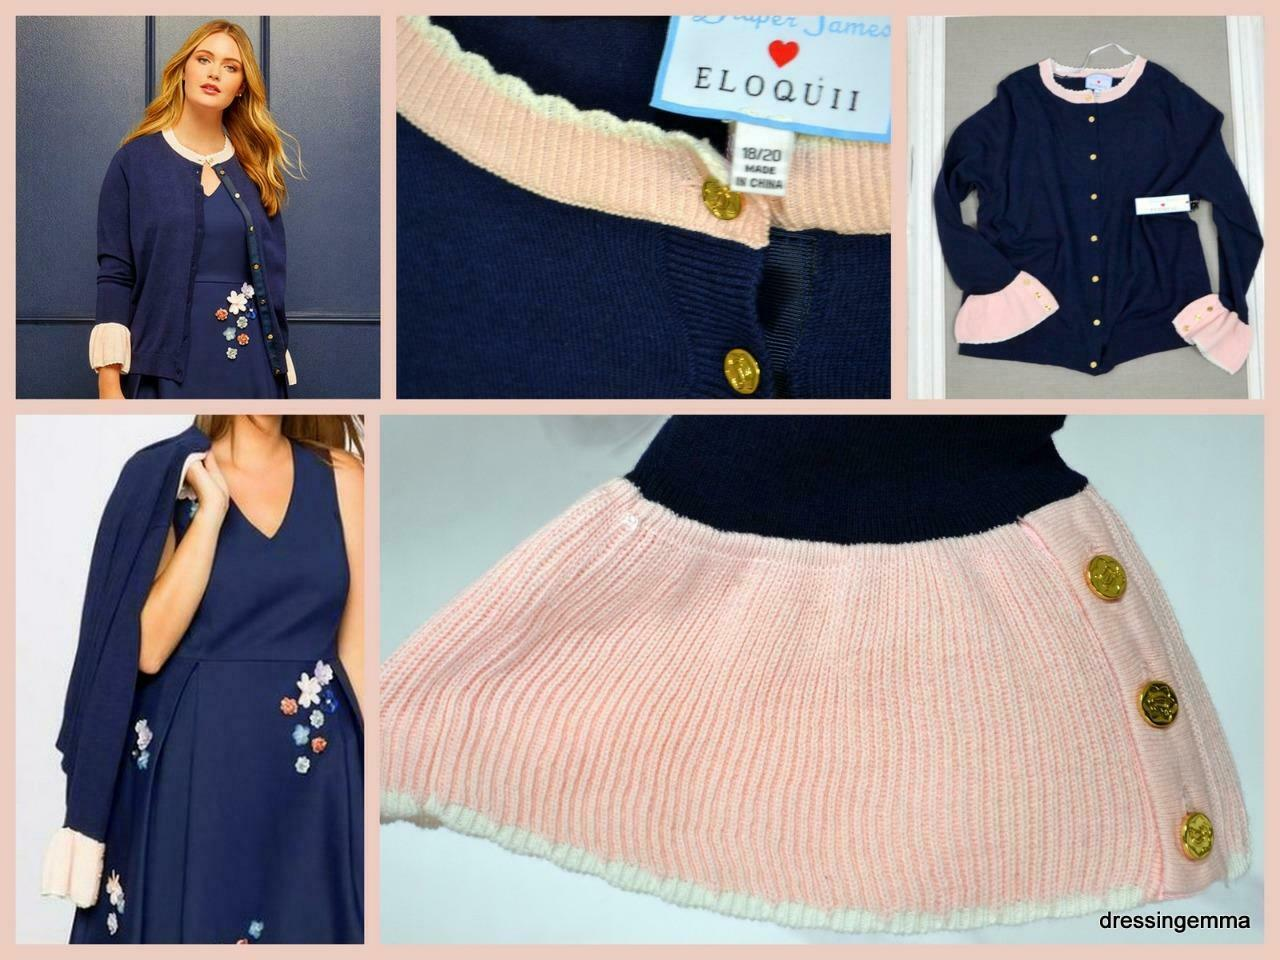 Plus 18 20 Reese Witherspoon Draper James Eloquii sctuttioped autodigan sweater neu